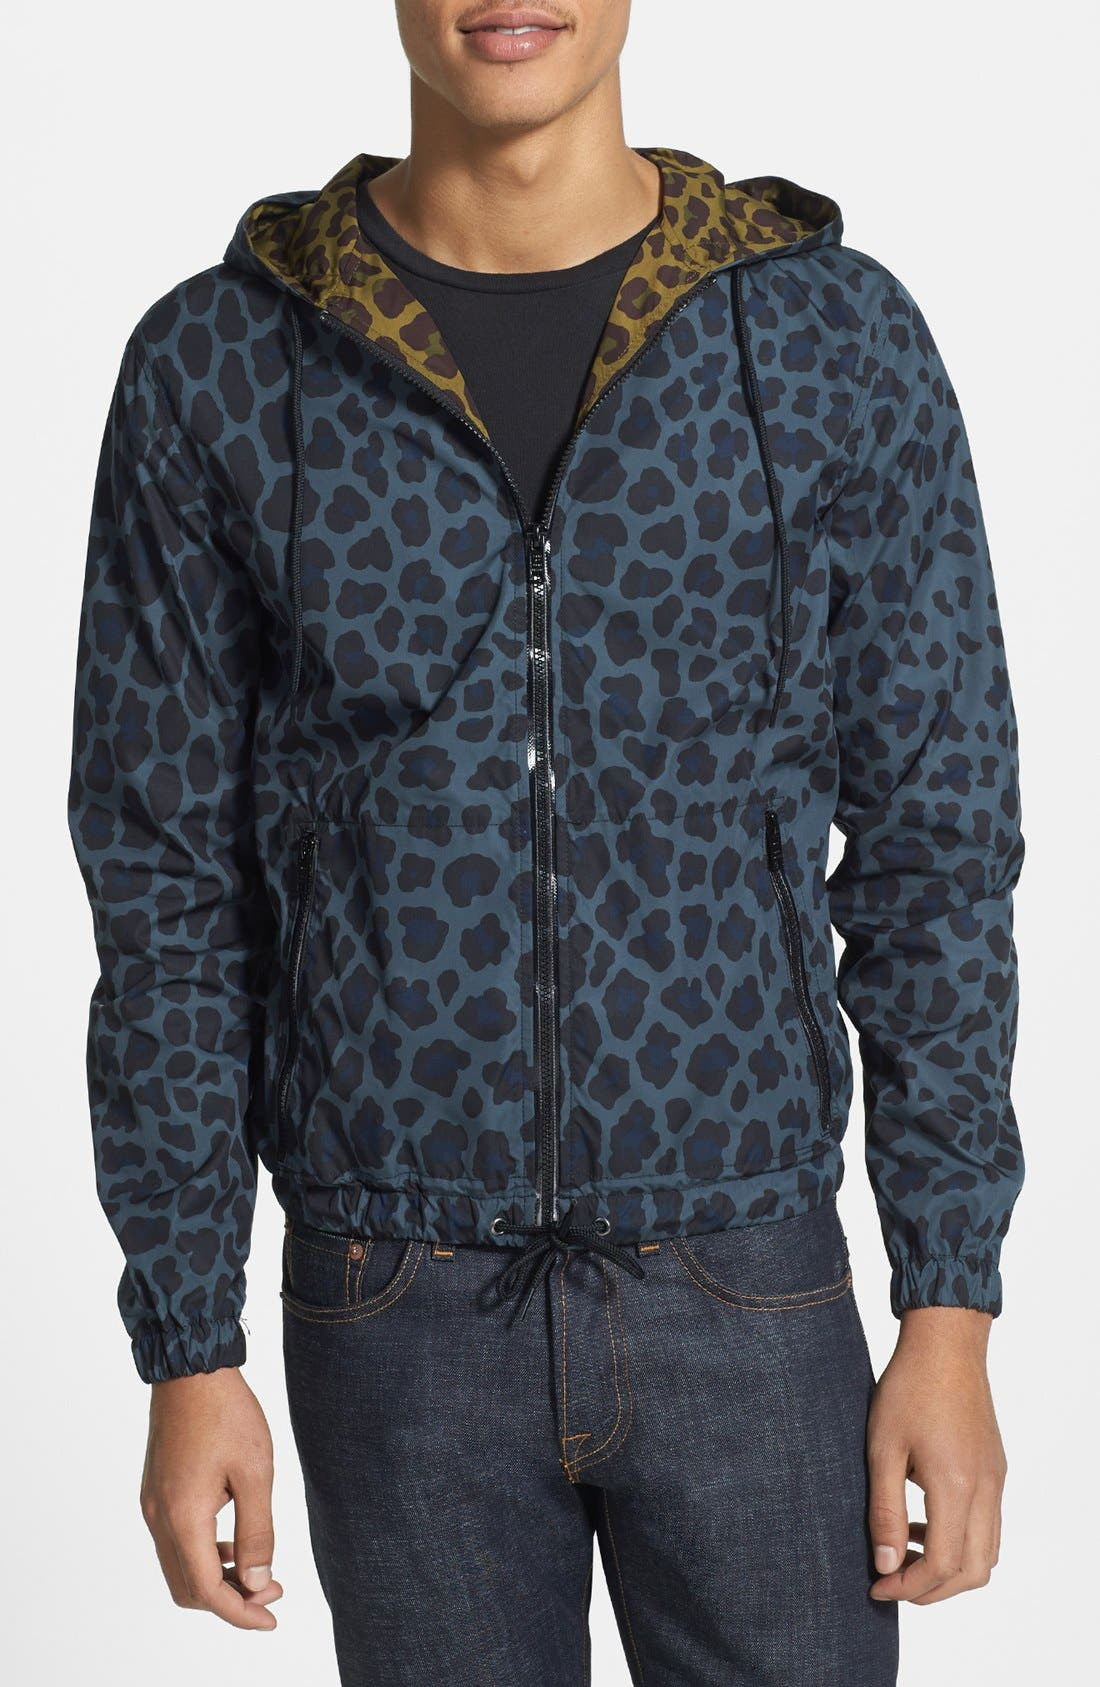 Alternate Image 1 Selected - MARC BY MARC JACOBS 'London Leopard' Water Resistant Jacket